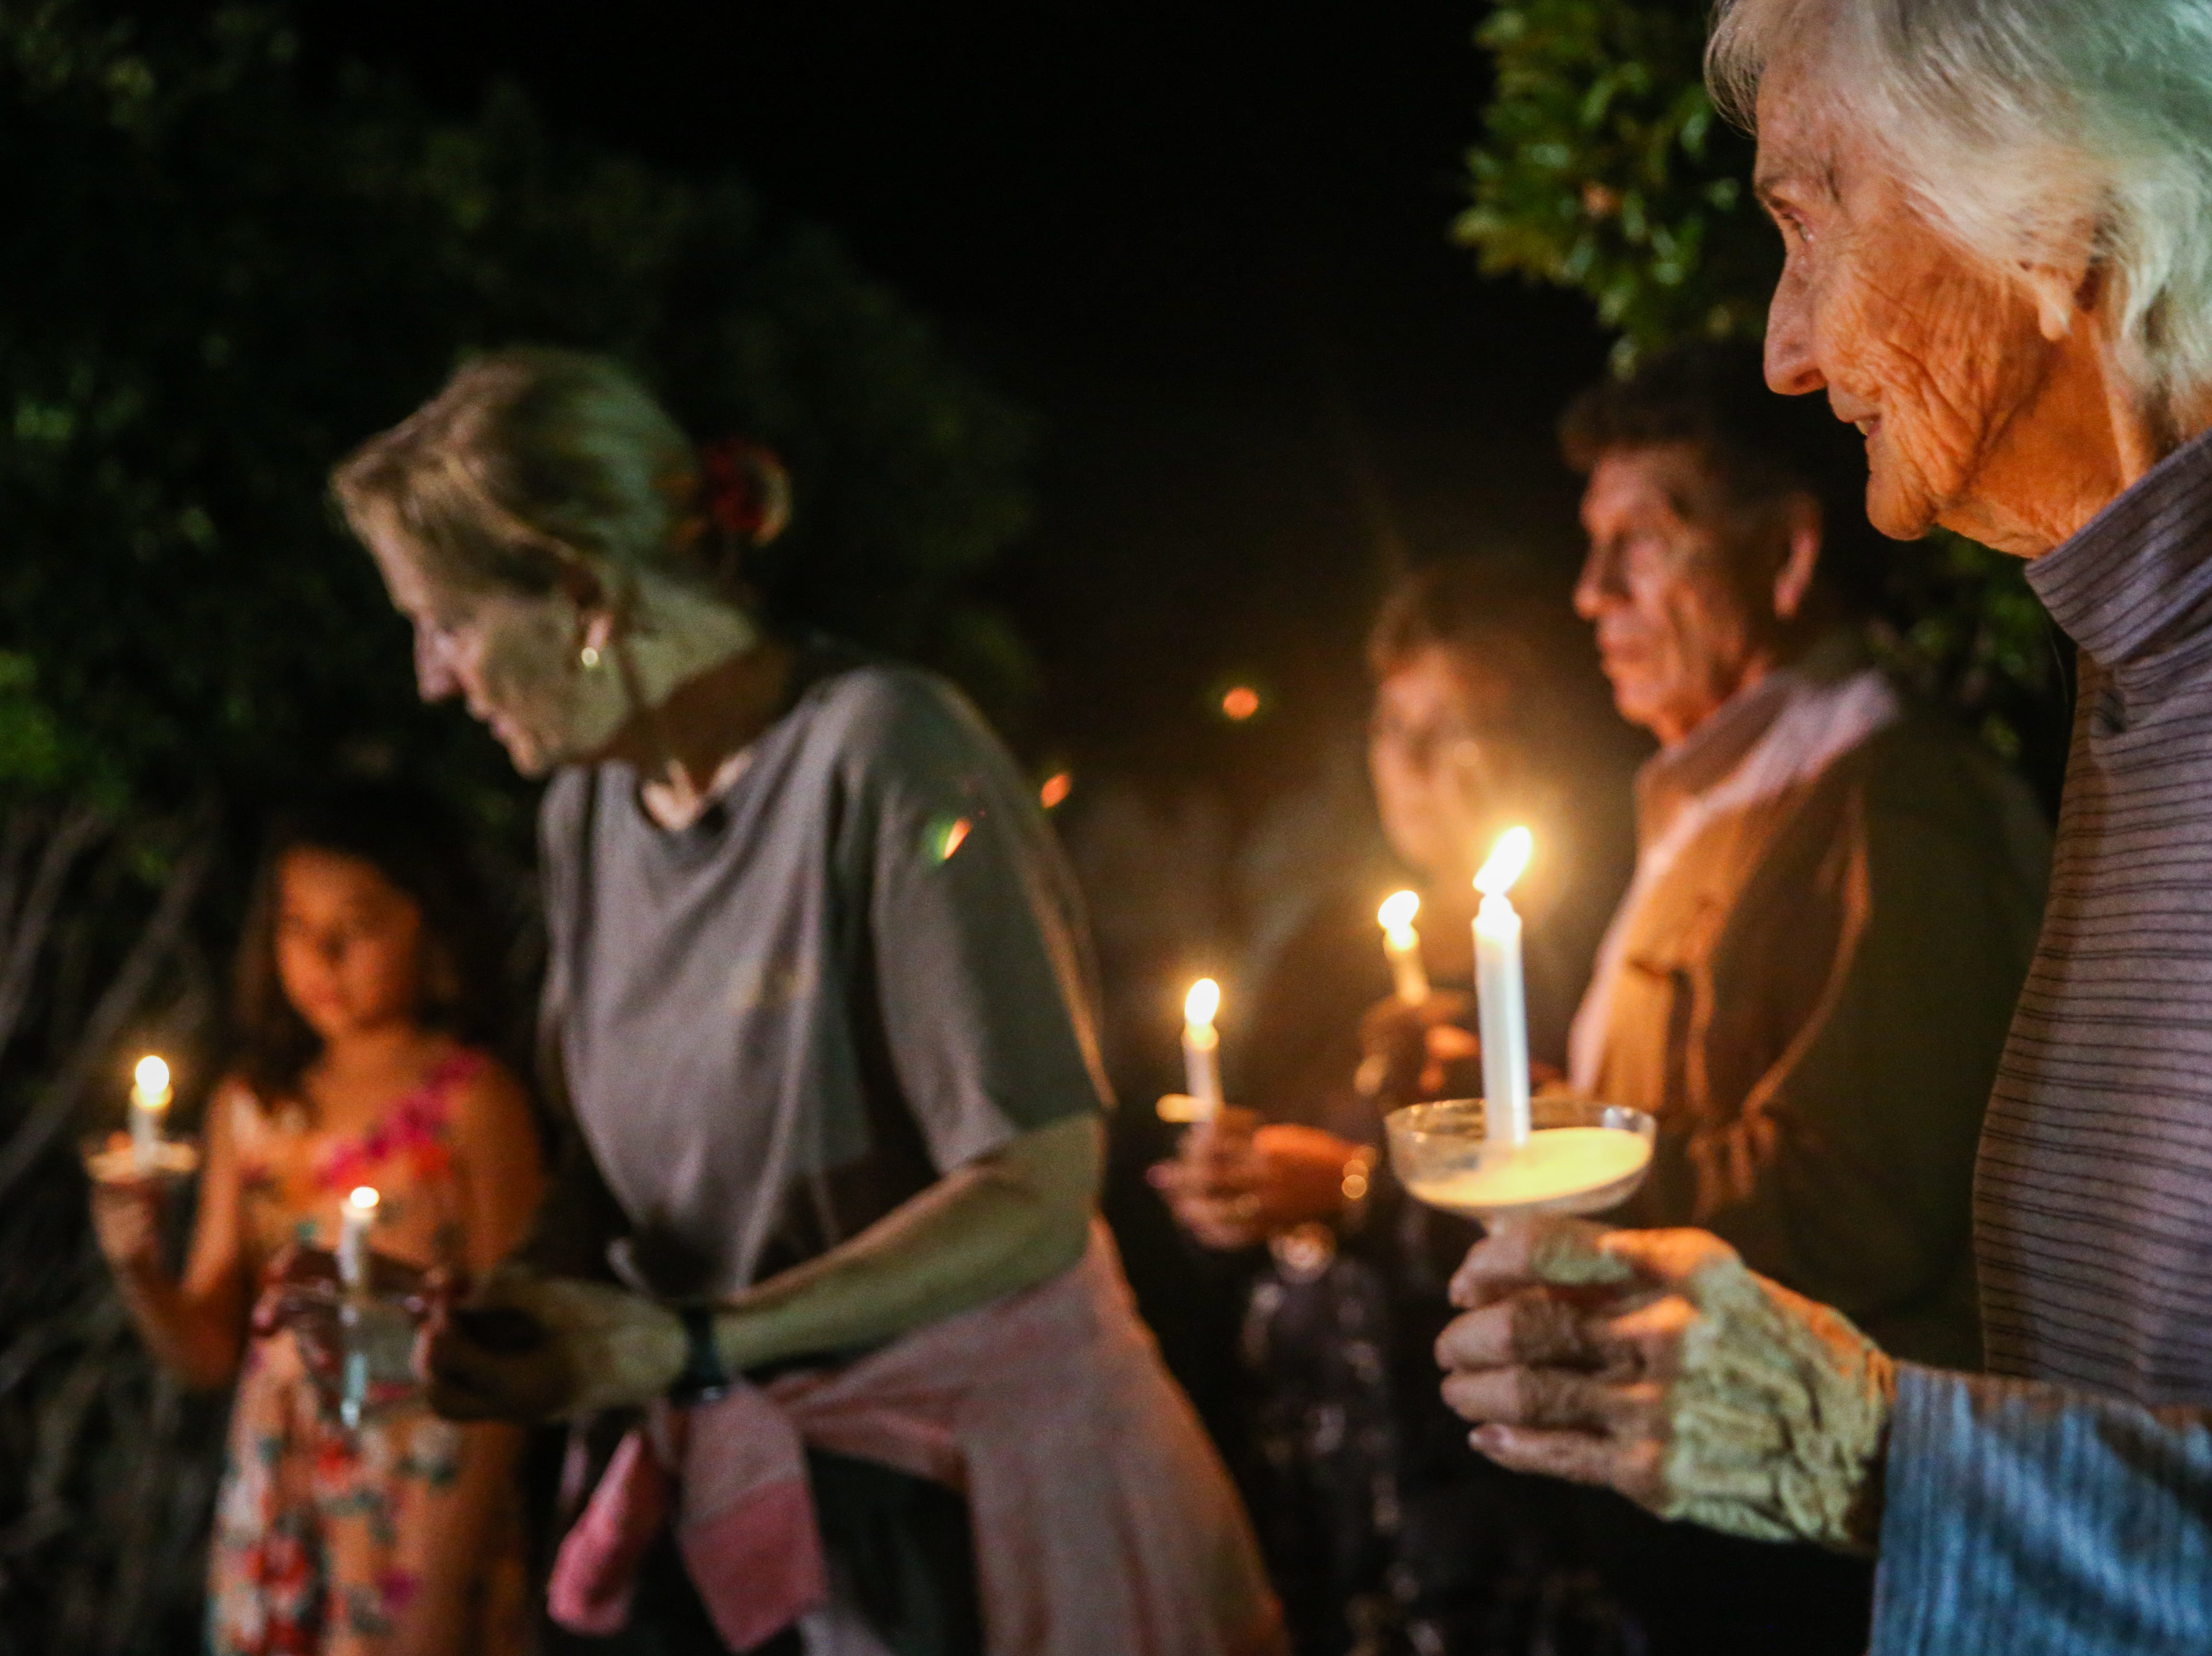 Residents hold up candles during a vigil for all those affected by the flood Saturday, Oct. 13, 2018, in Junction.